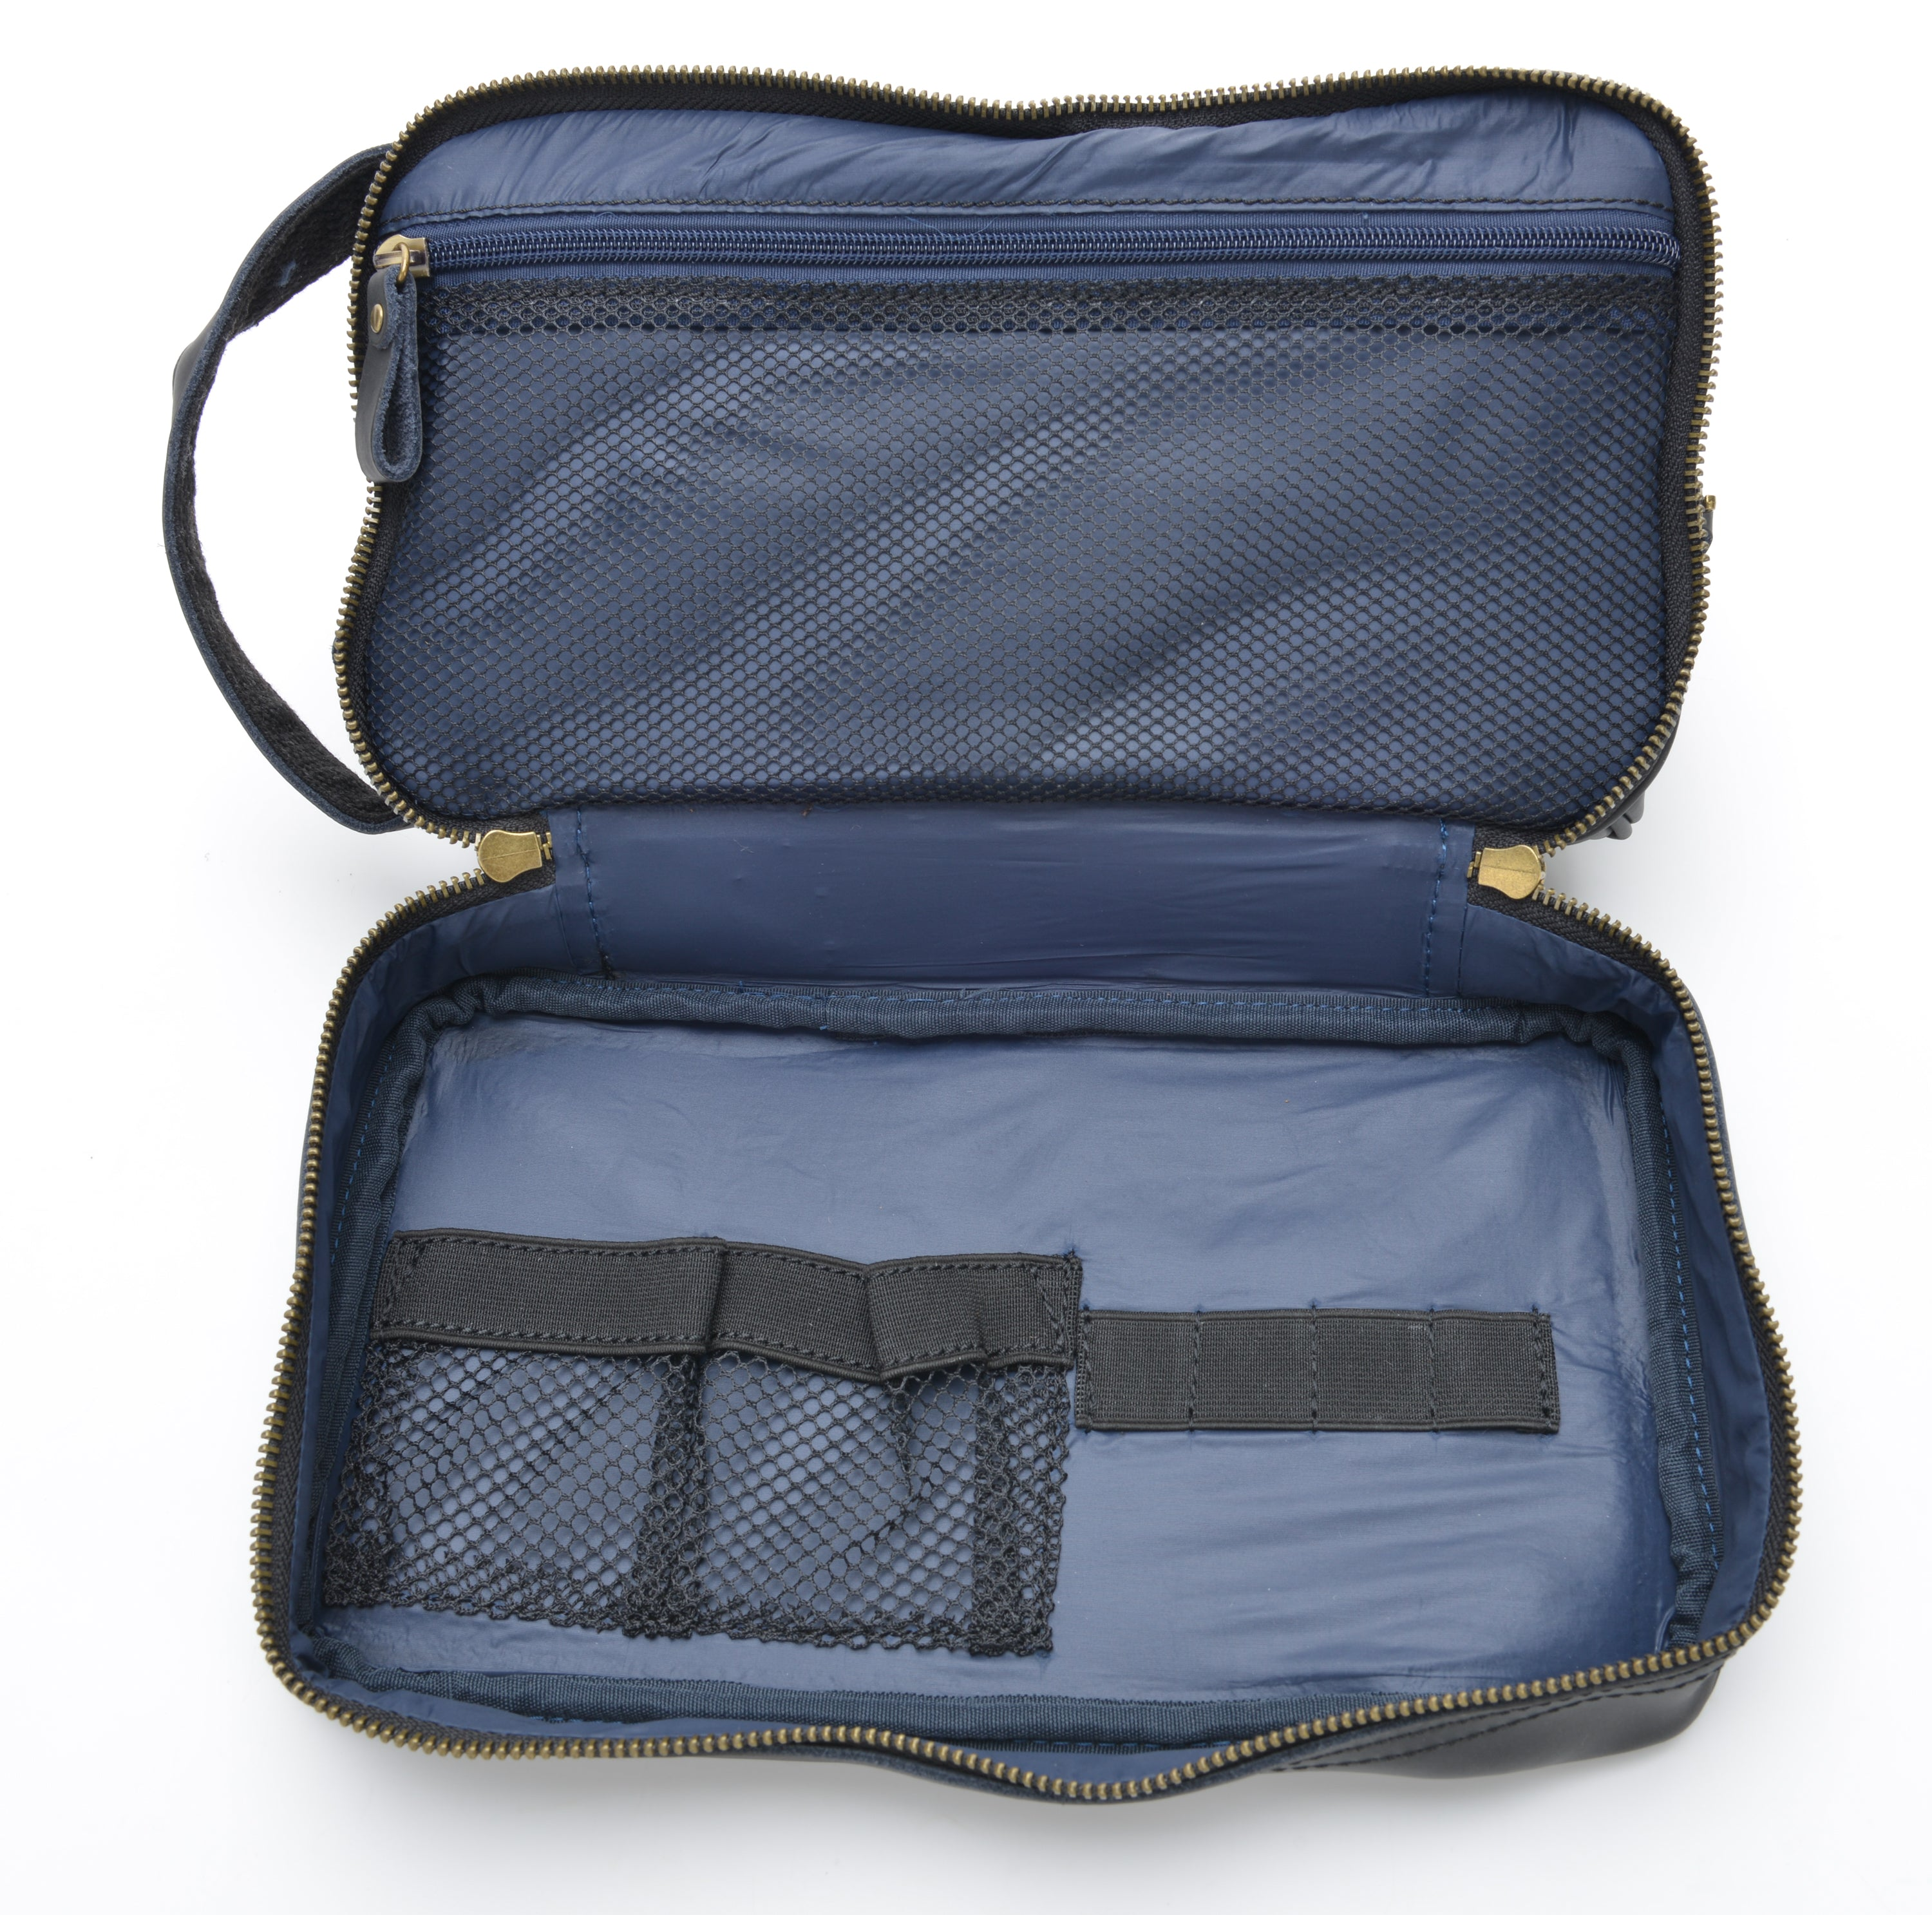 Black Toiletry Bag colorway - Wander Travel and Supply